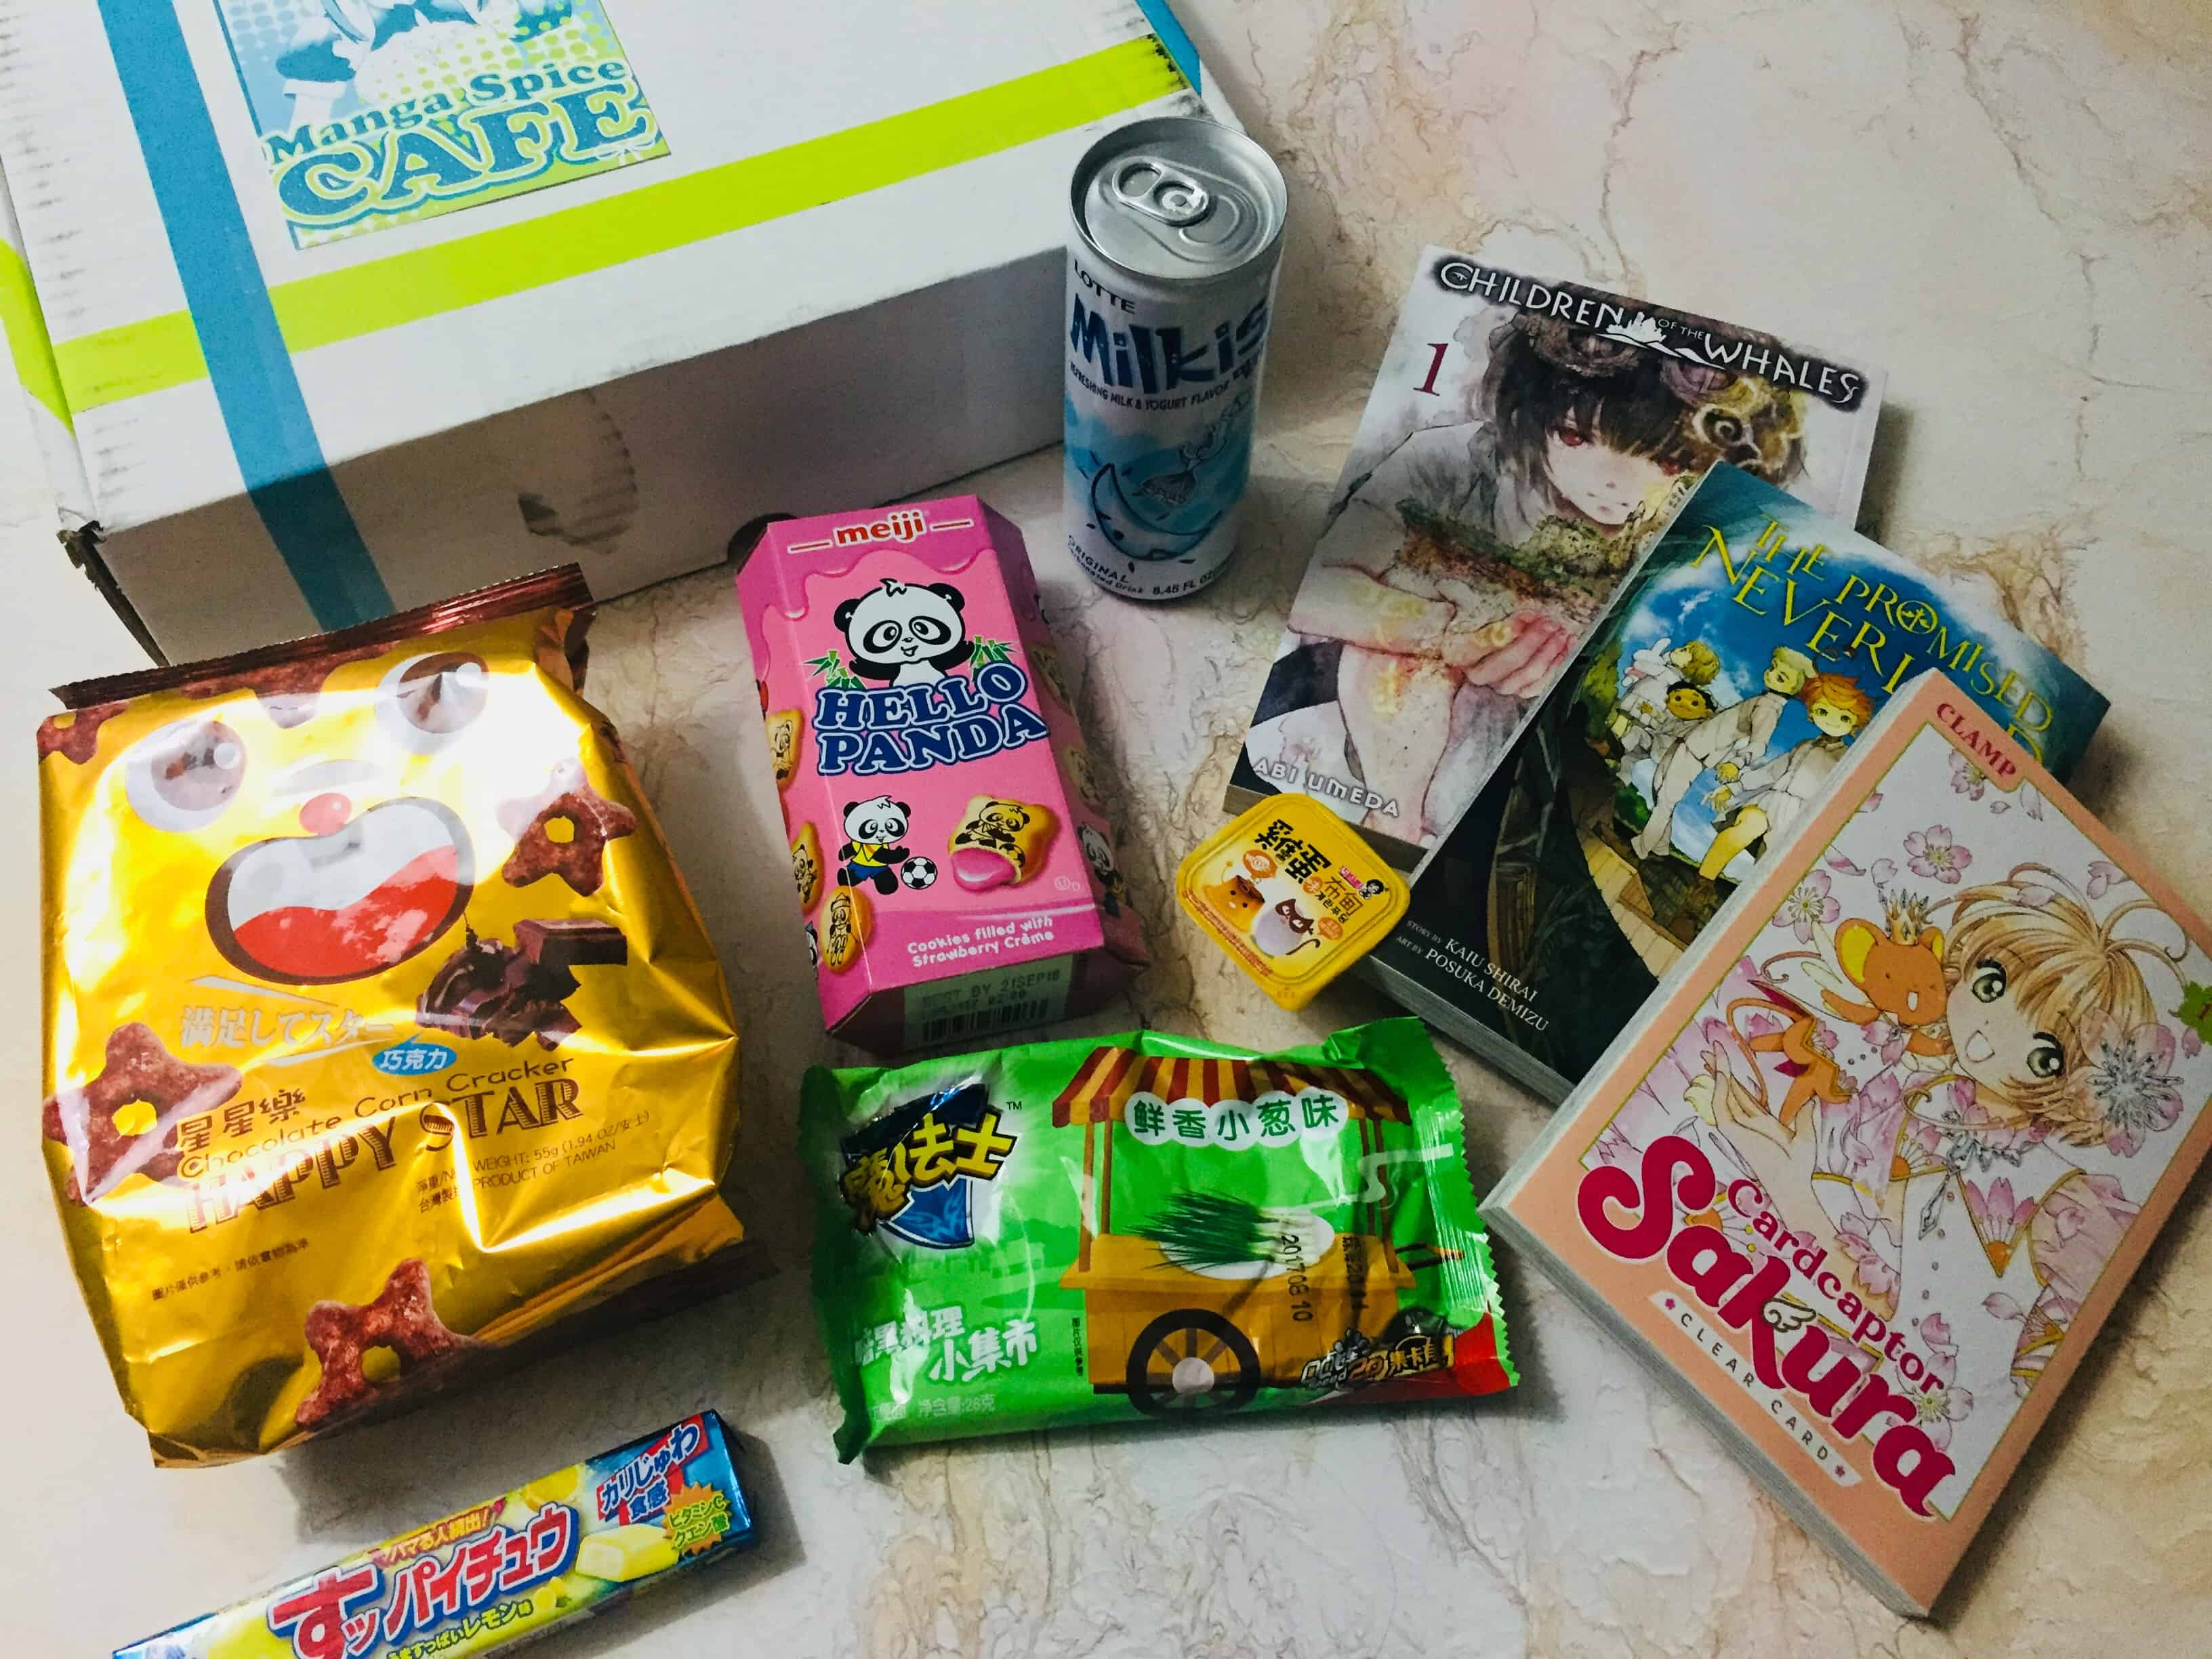 Manga Spice Cafe December 2017 Subscription Box Review